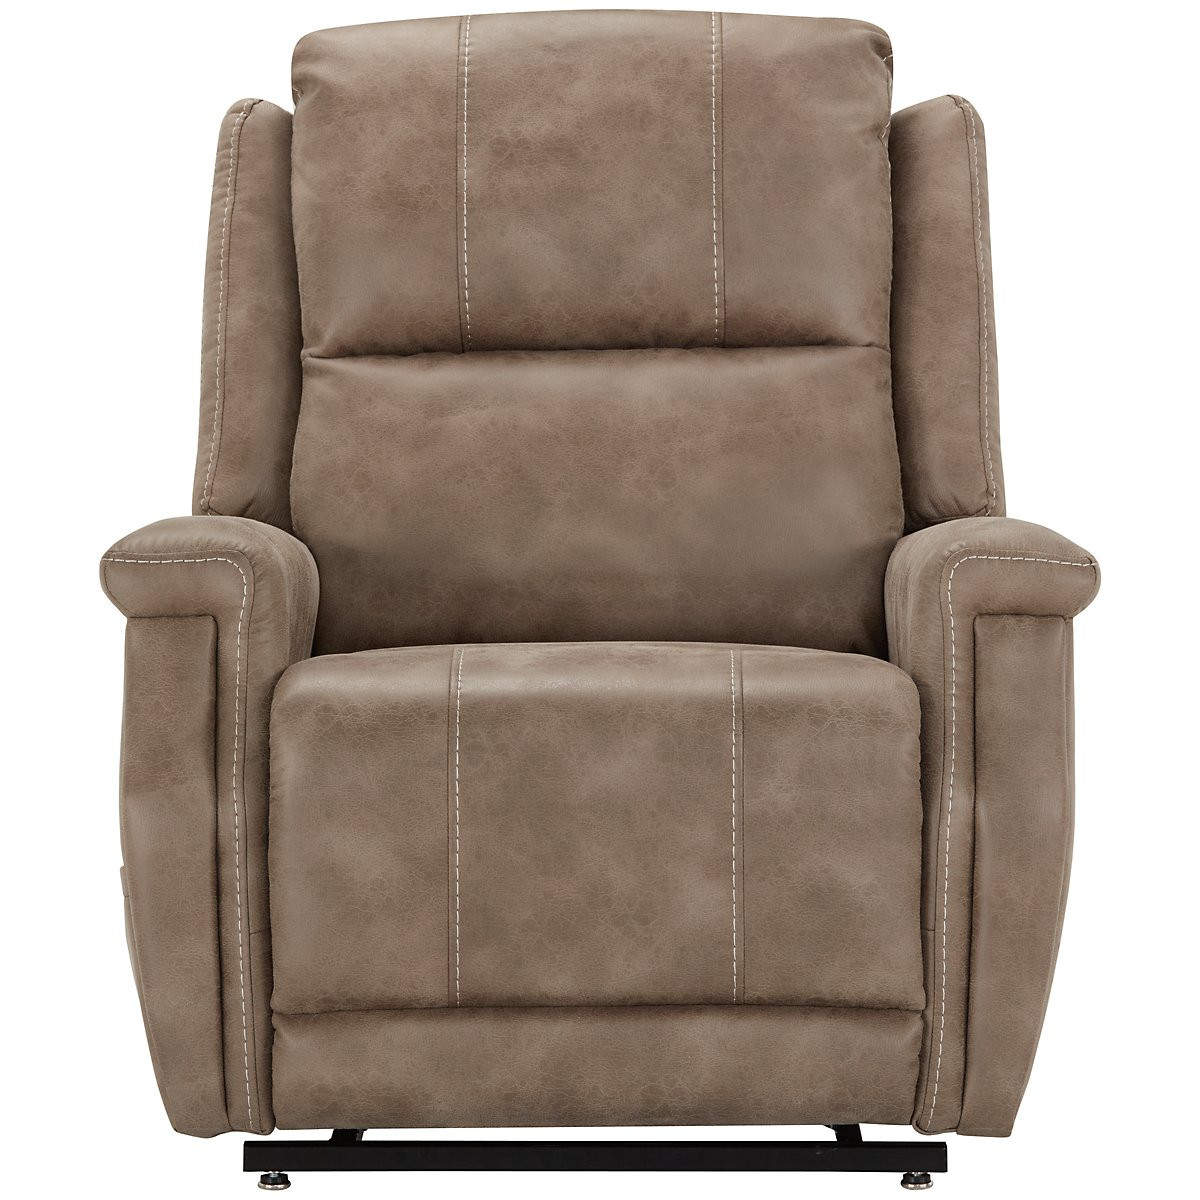 City Furniture Jude Dk Taupe Microfiber Power Lift Recliner